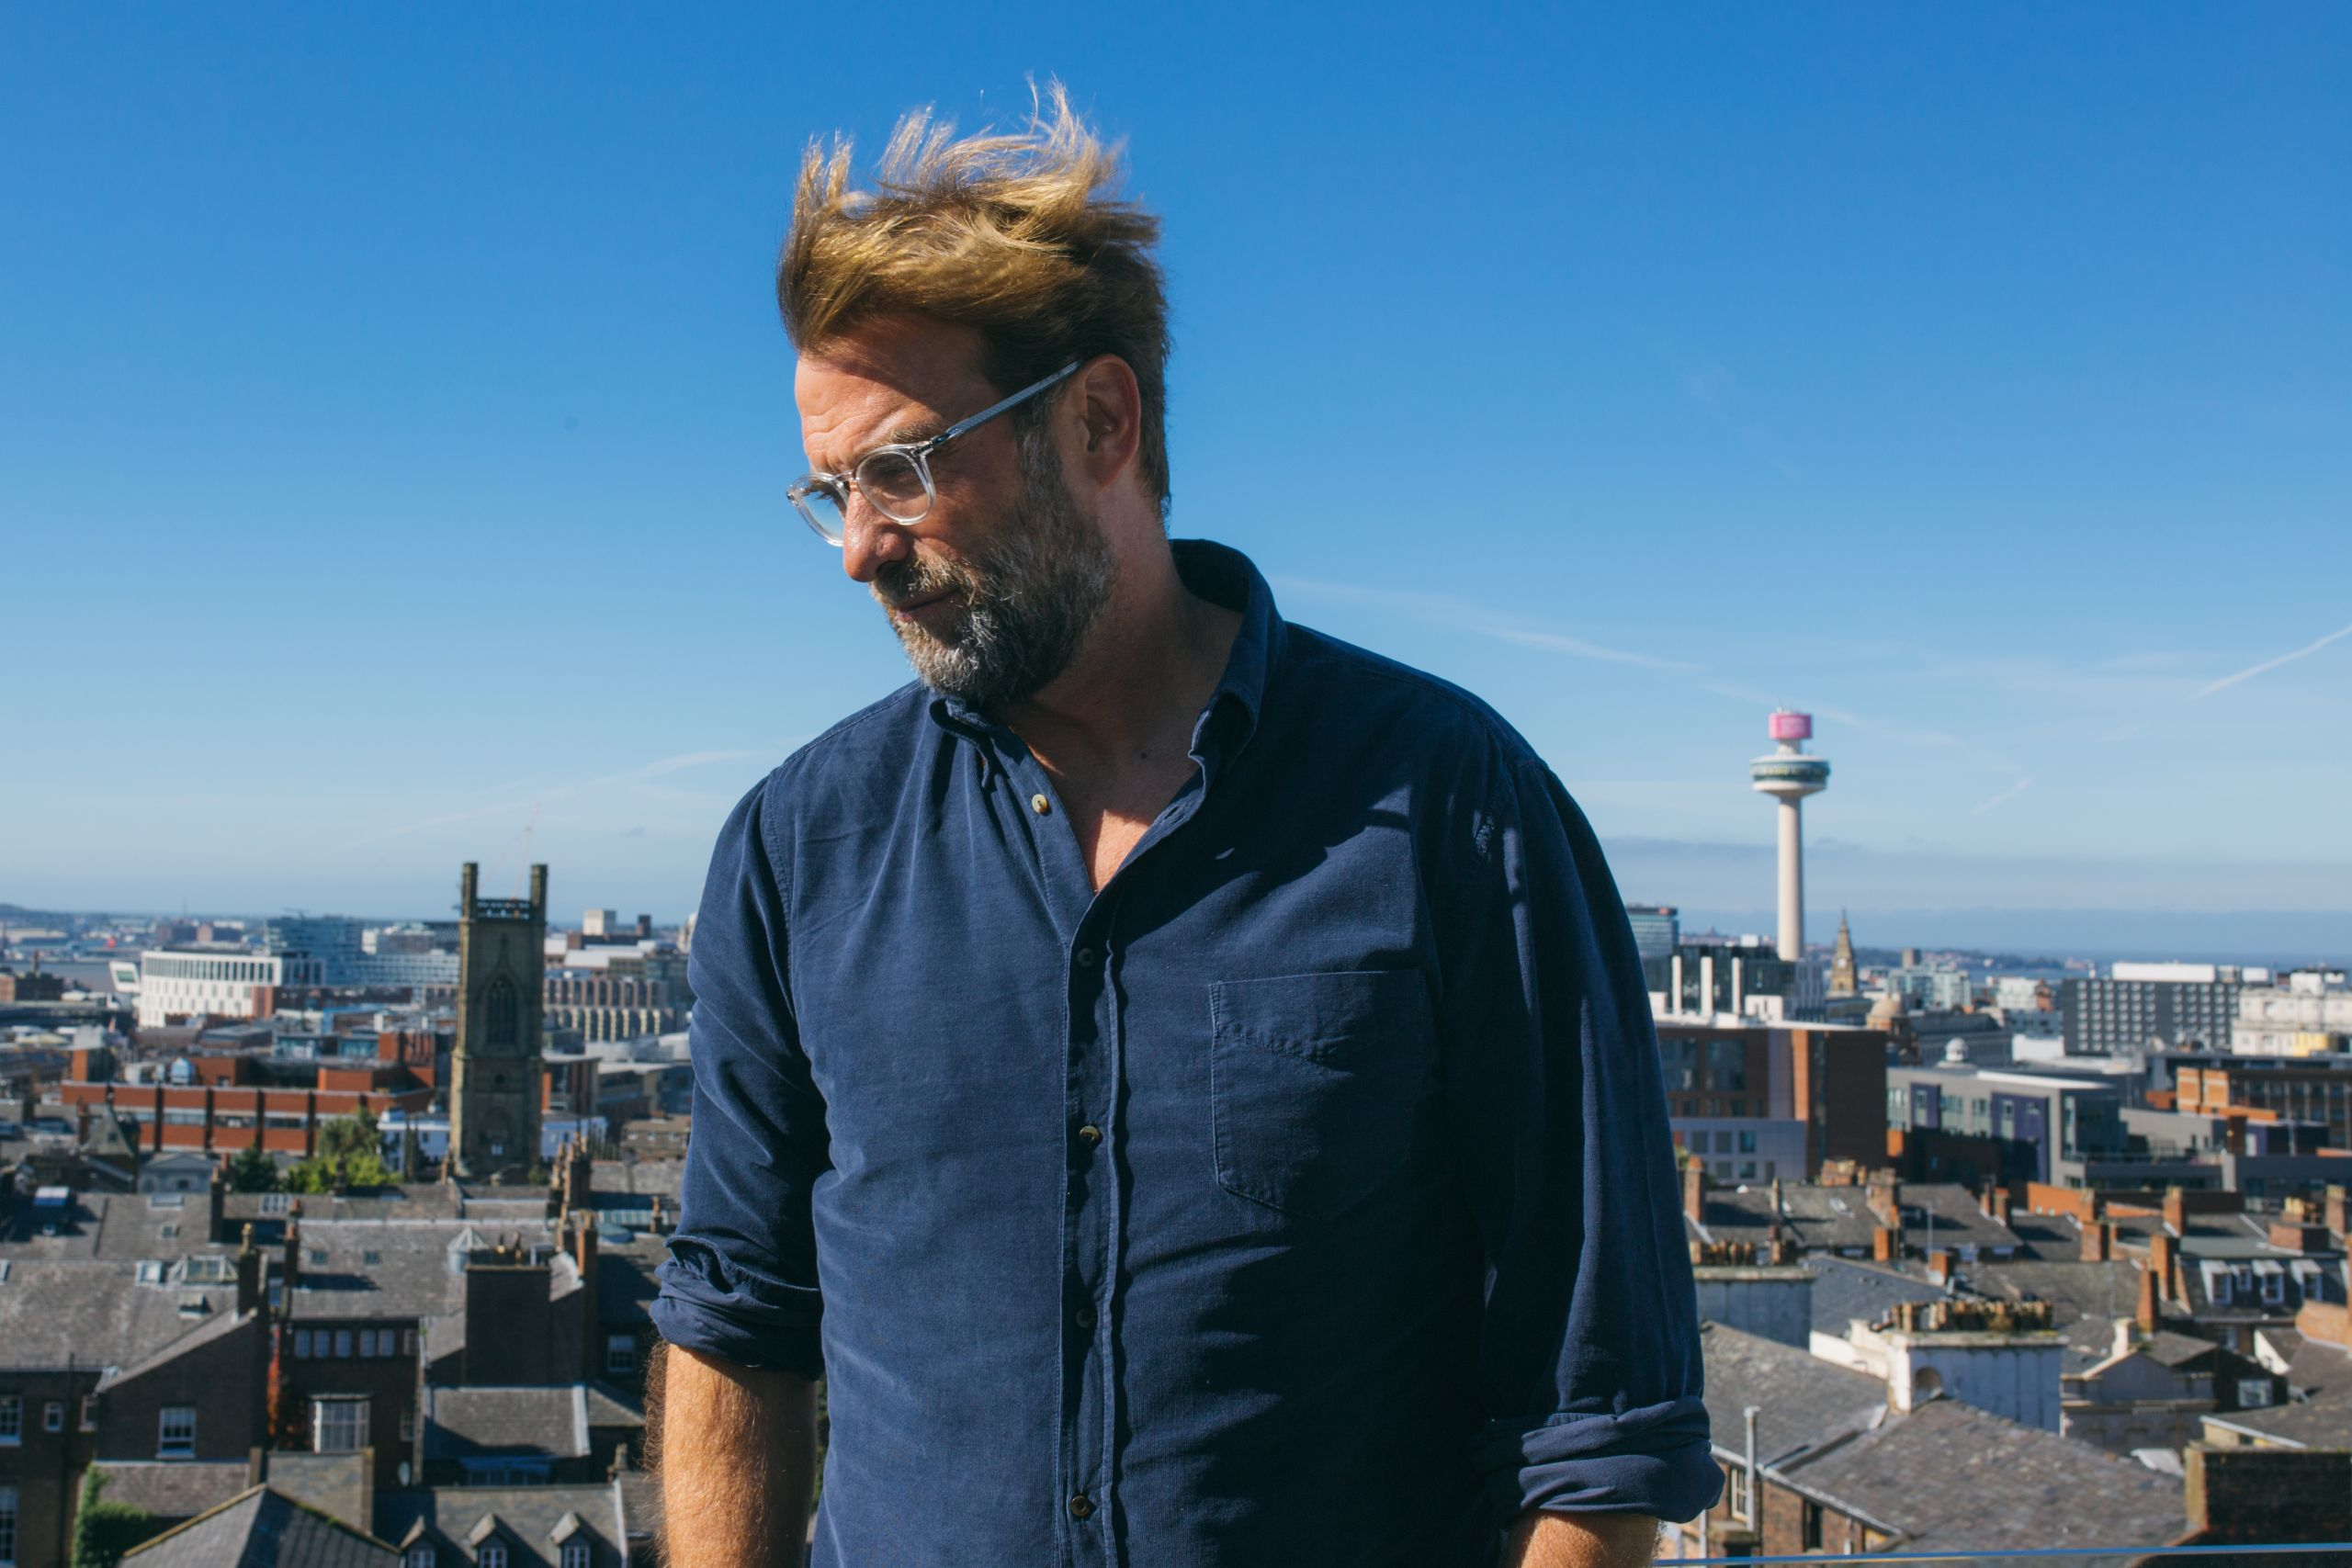 Jürgen Klopp interview: I've put everything I have - my knowledge. passion. heart. experience - into Liverpool